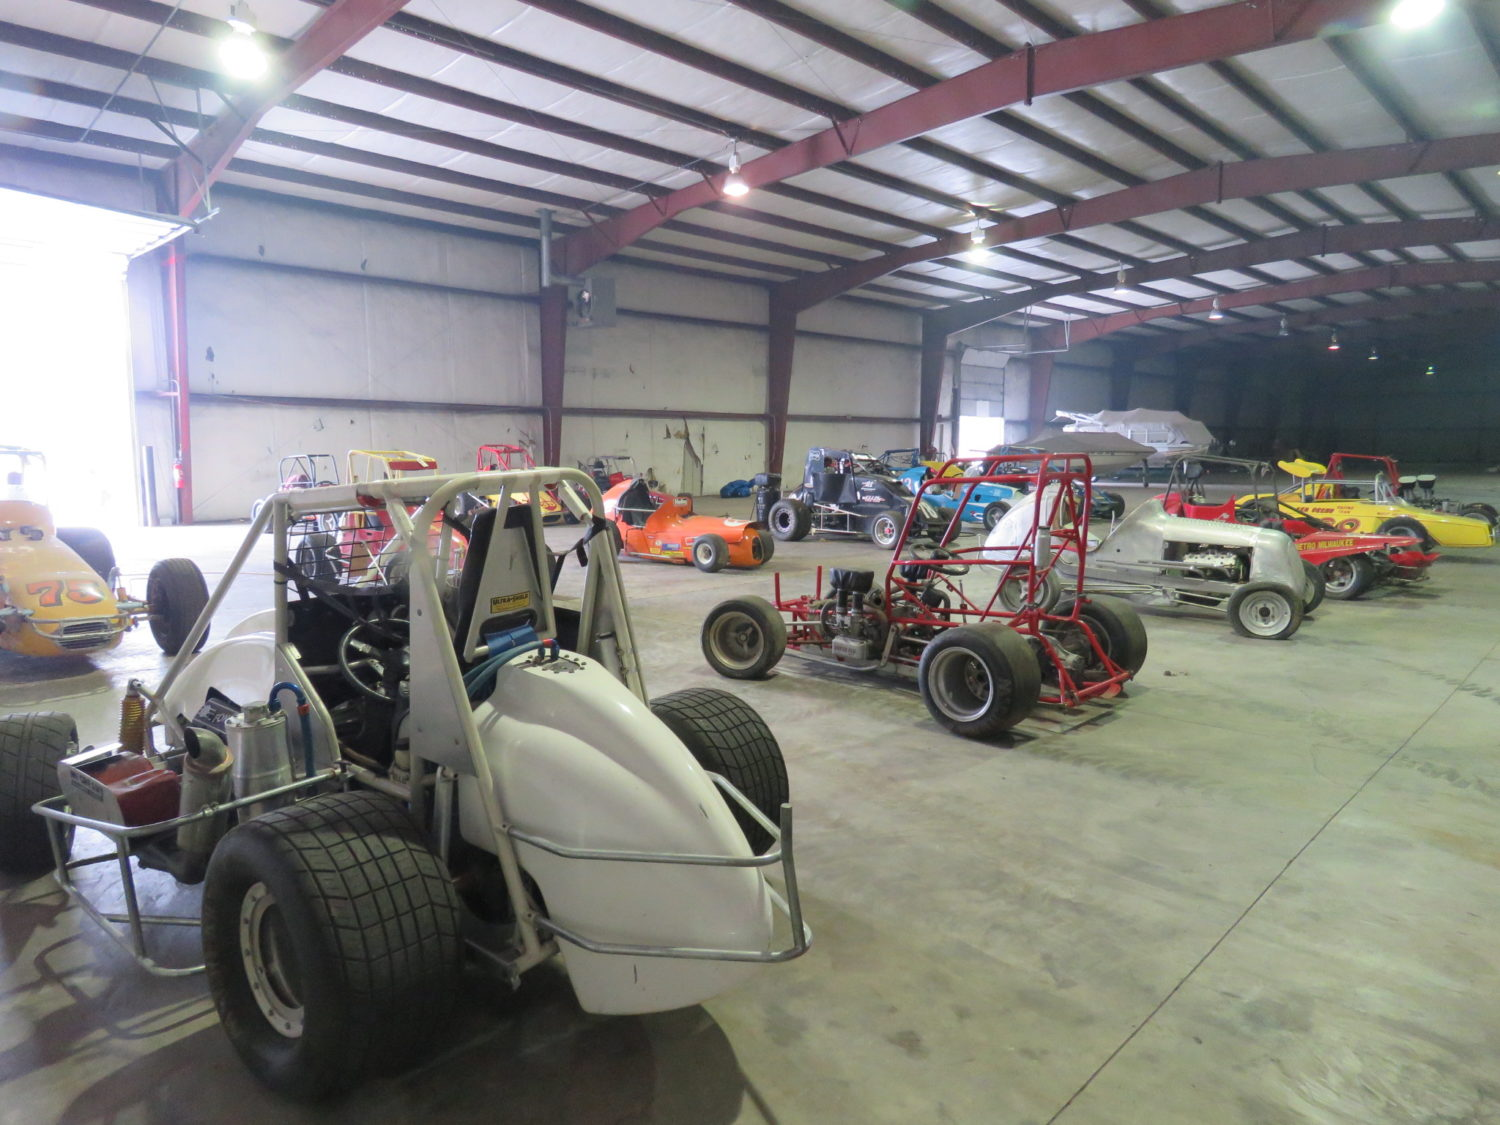 Amazing Vintage Motorcycles, Race Cars, Collector Cars & Parts! The JAB Collection - image 4